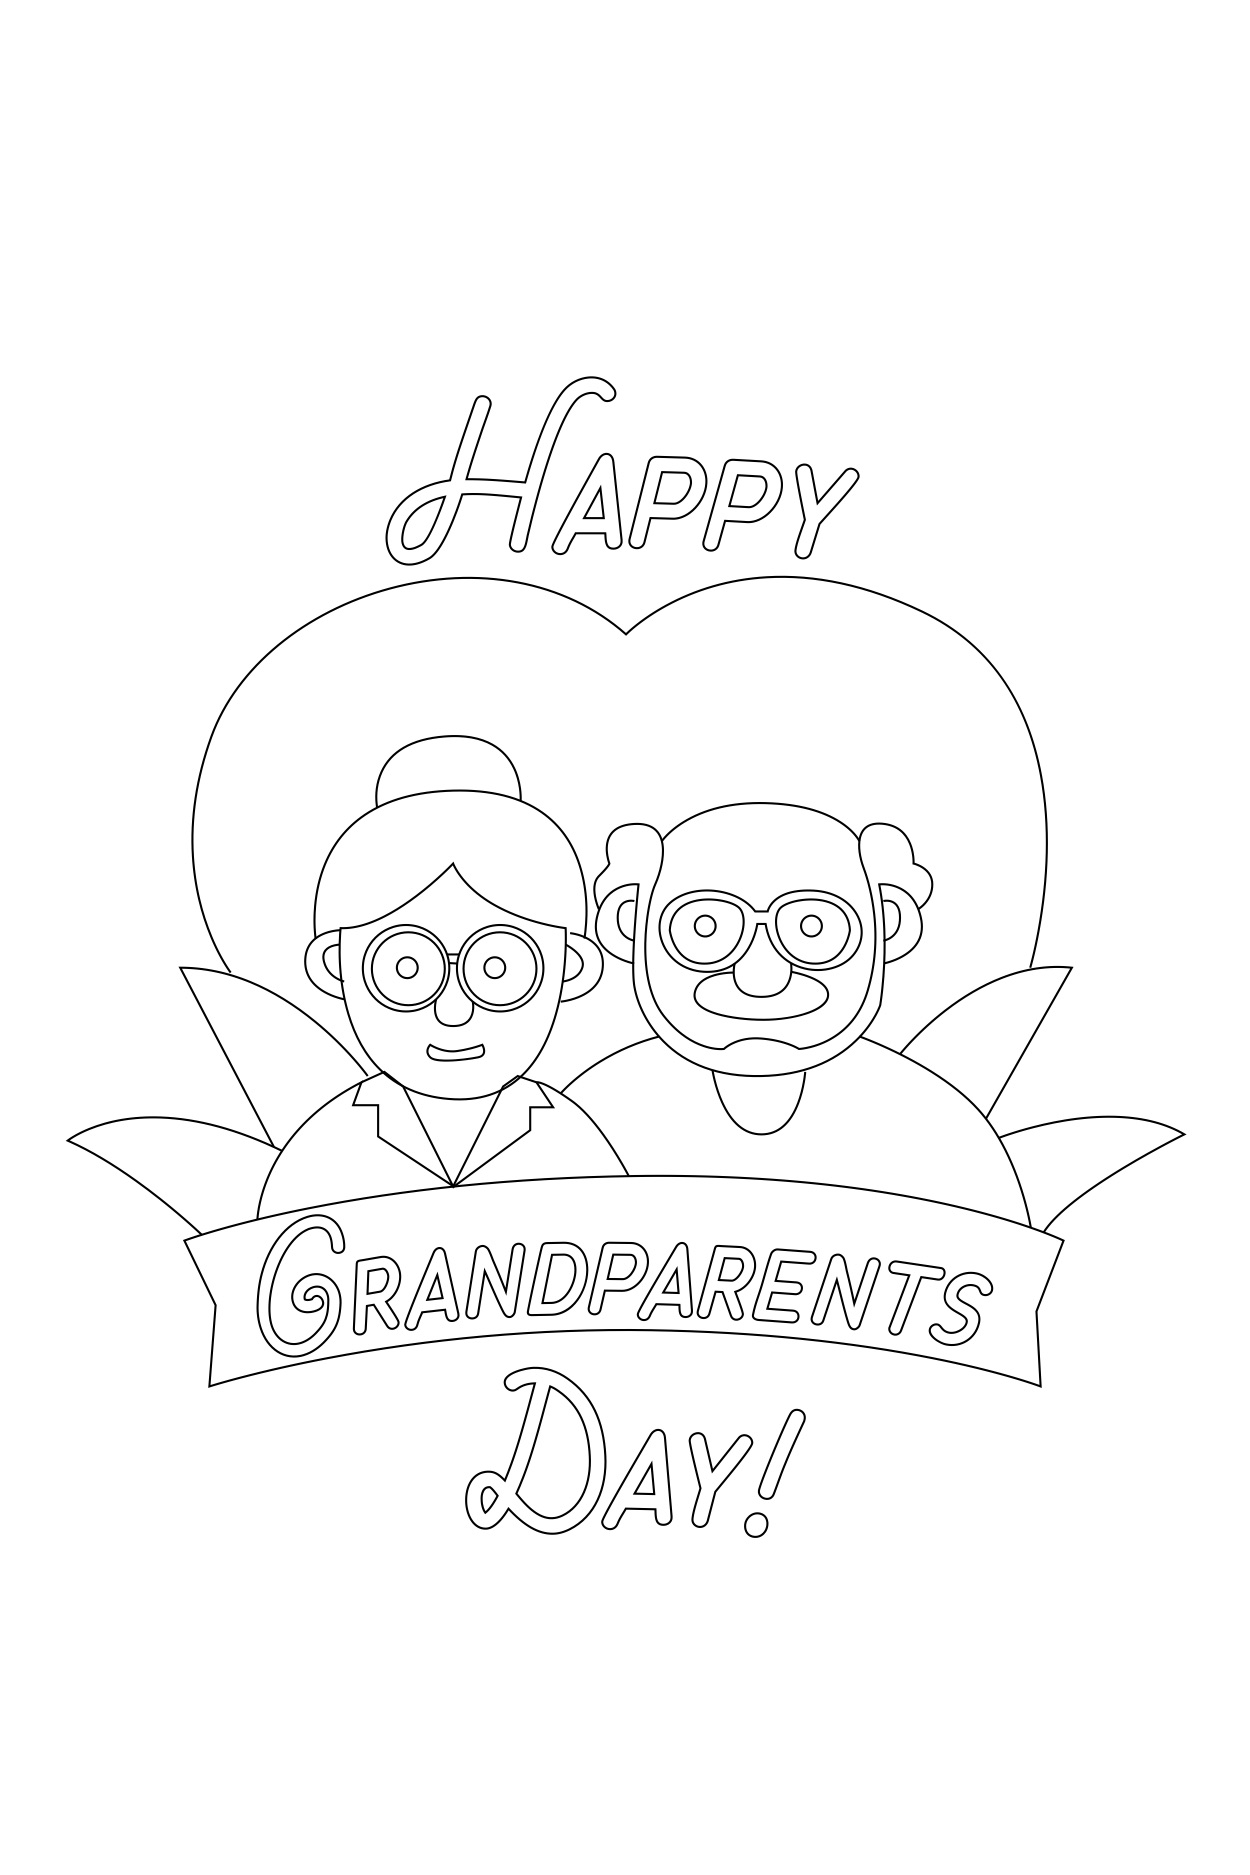 graphic regarding Grandparents Day Cards Printable named The Sweetest Grandparents Working day Playing cards for the Simplest Outdated Americans